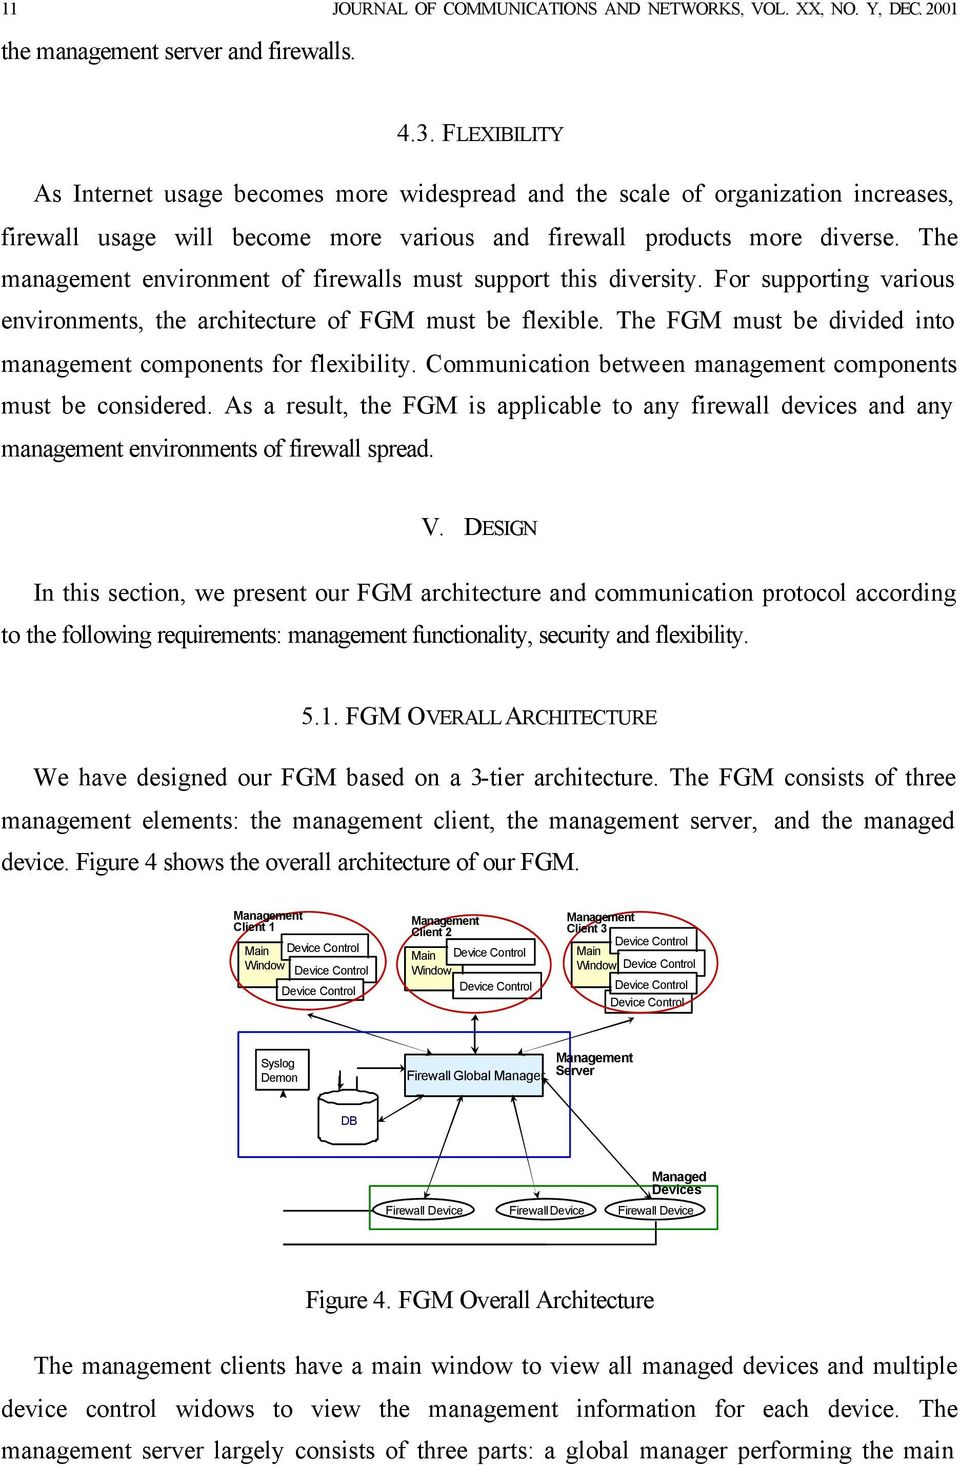 The management environment of firewalls must support this diversity. For supporting various environments, the architecture of FGM must be flexible.